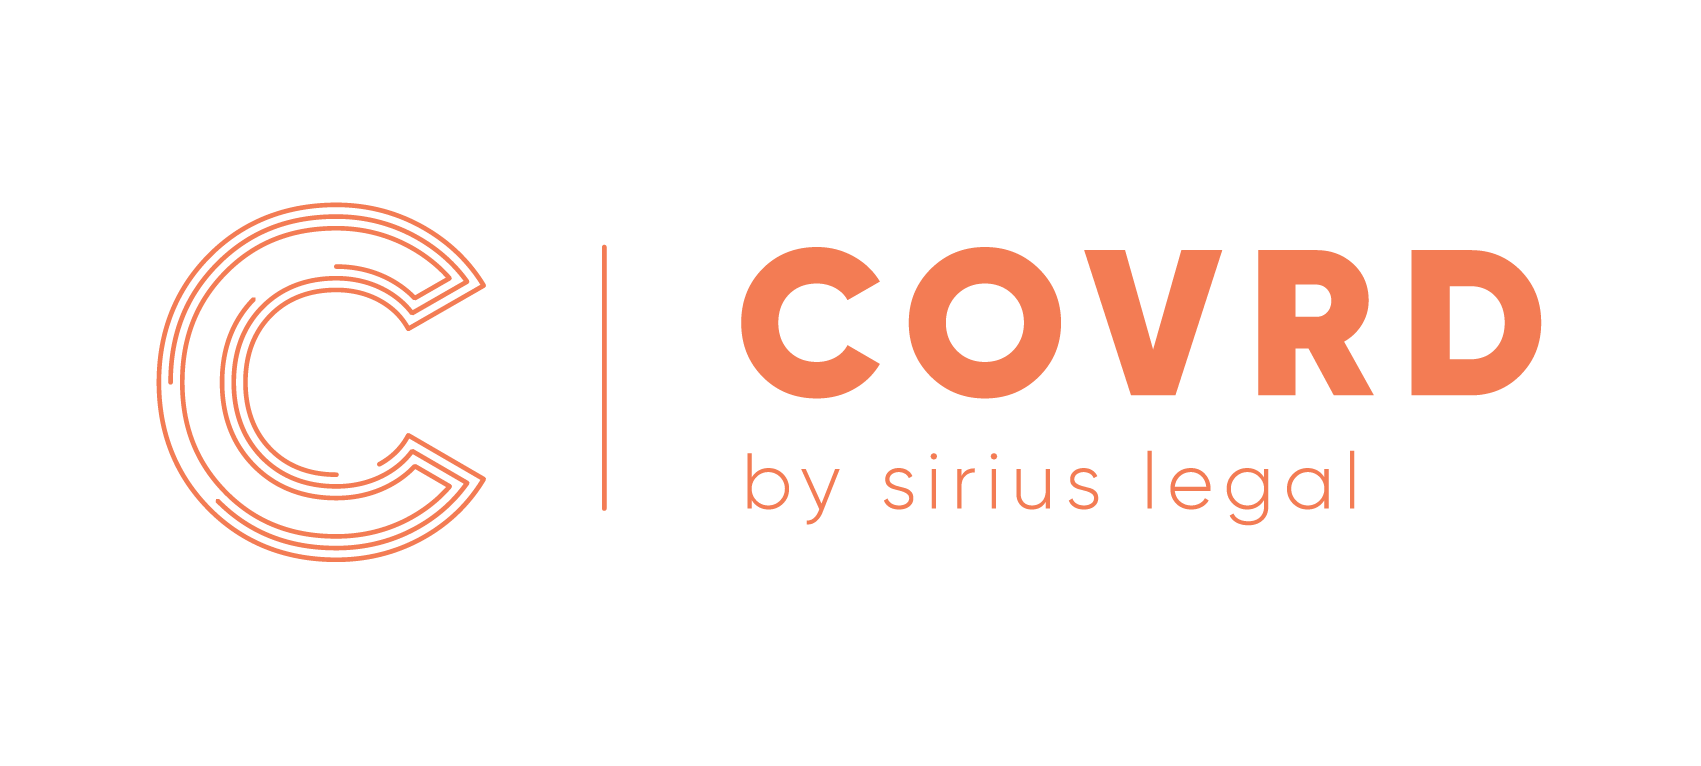 Covrd | By Sirius Legal